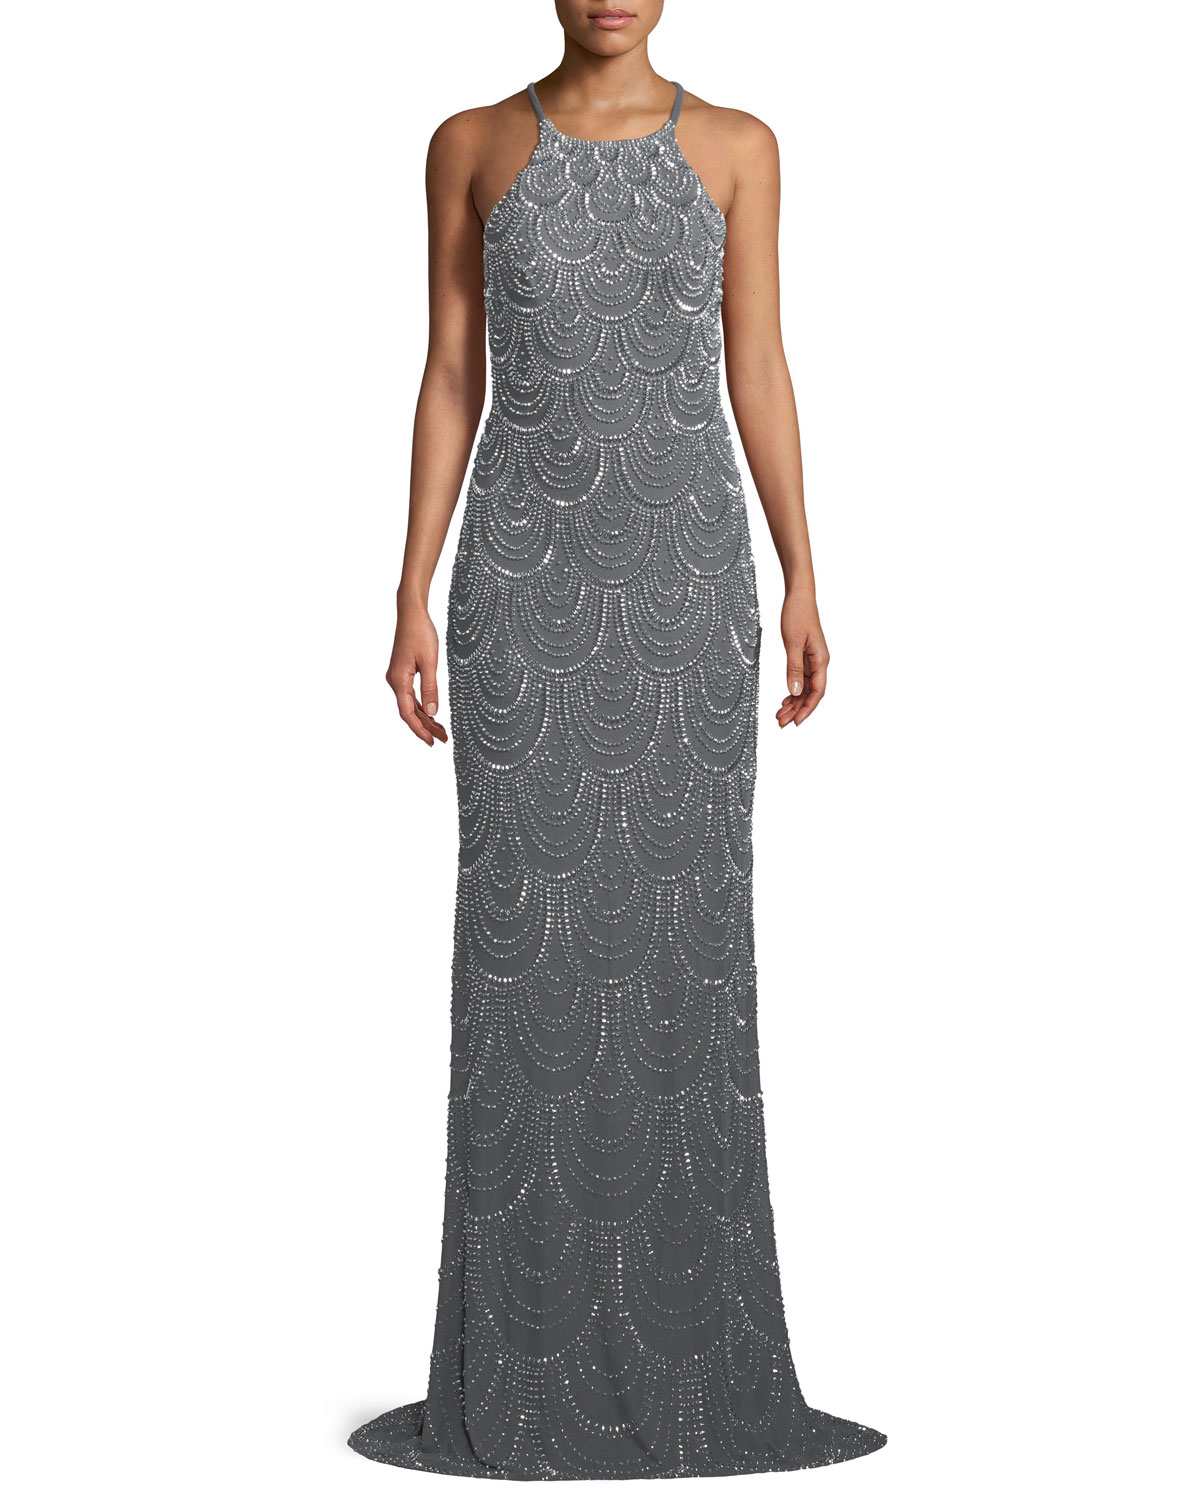 La Femme Allover Beaded Open-Back Gown | Neiman Marcus